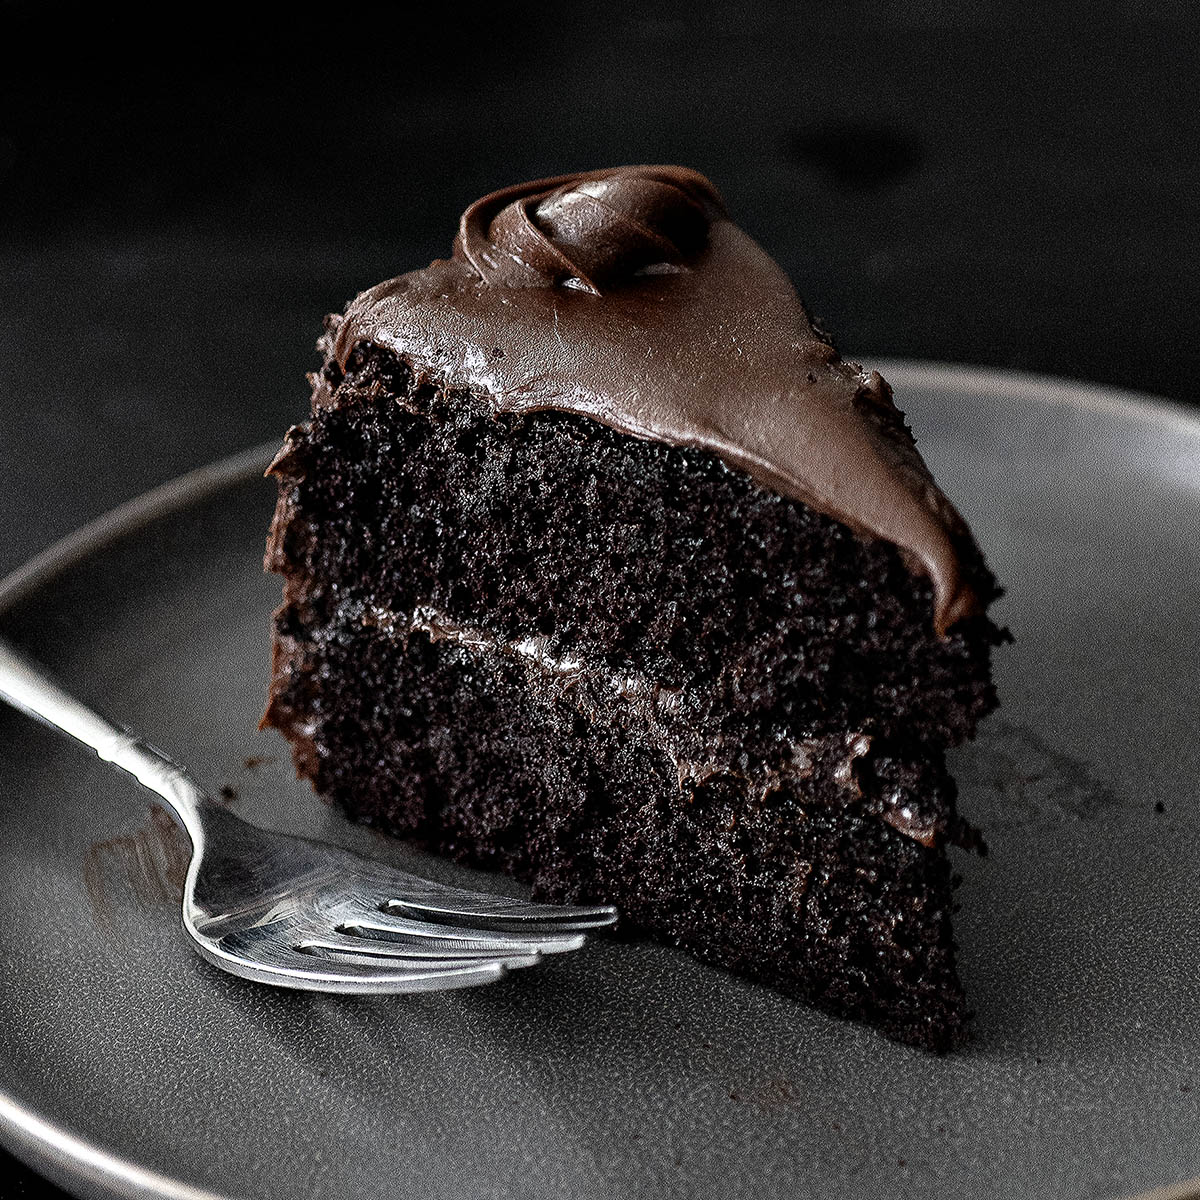 A slice of chocolate layer cake on a dark gray plate with a fork